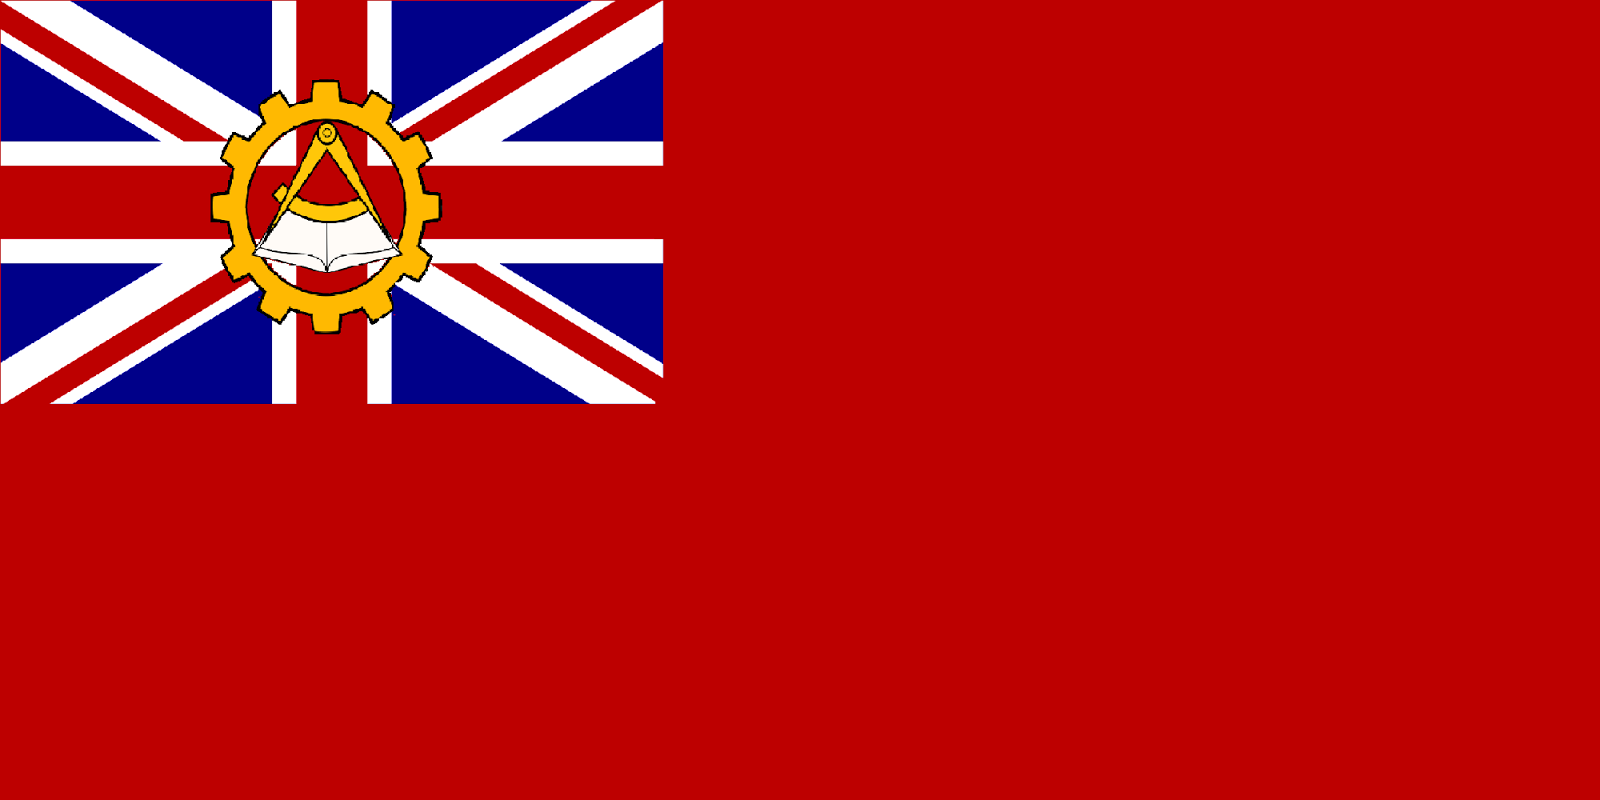 Sams flags communist british isles alternative history the second idea is similar but based more on the red ensign with the union flag defaced with the communist badge biocorpaavc Gallery